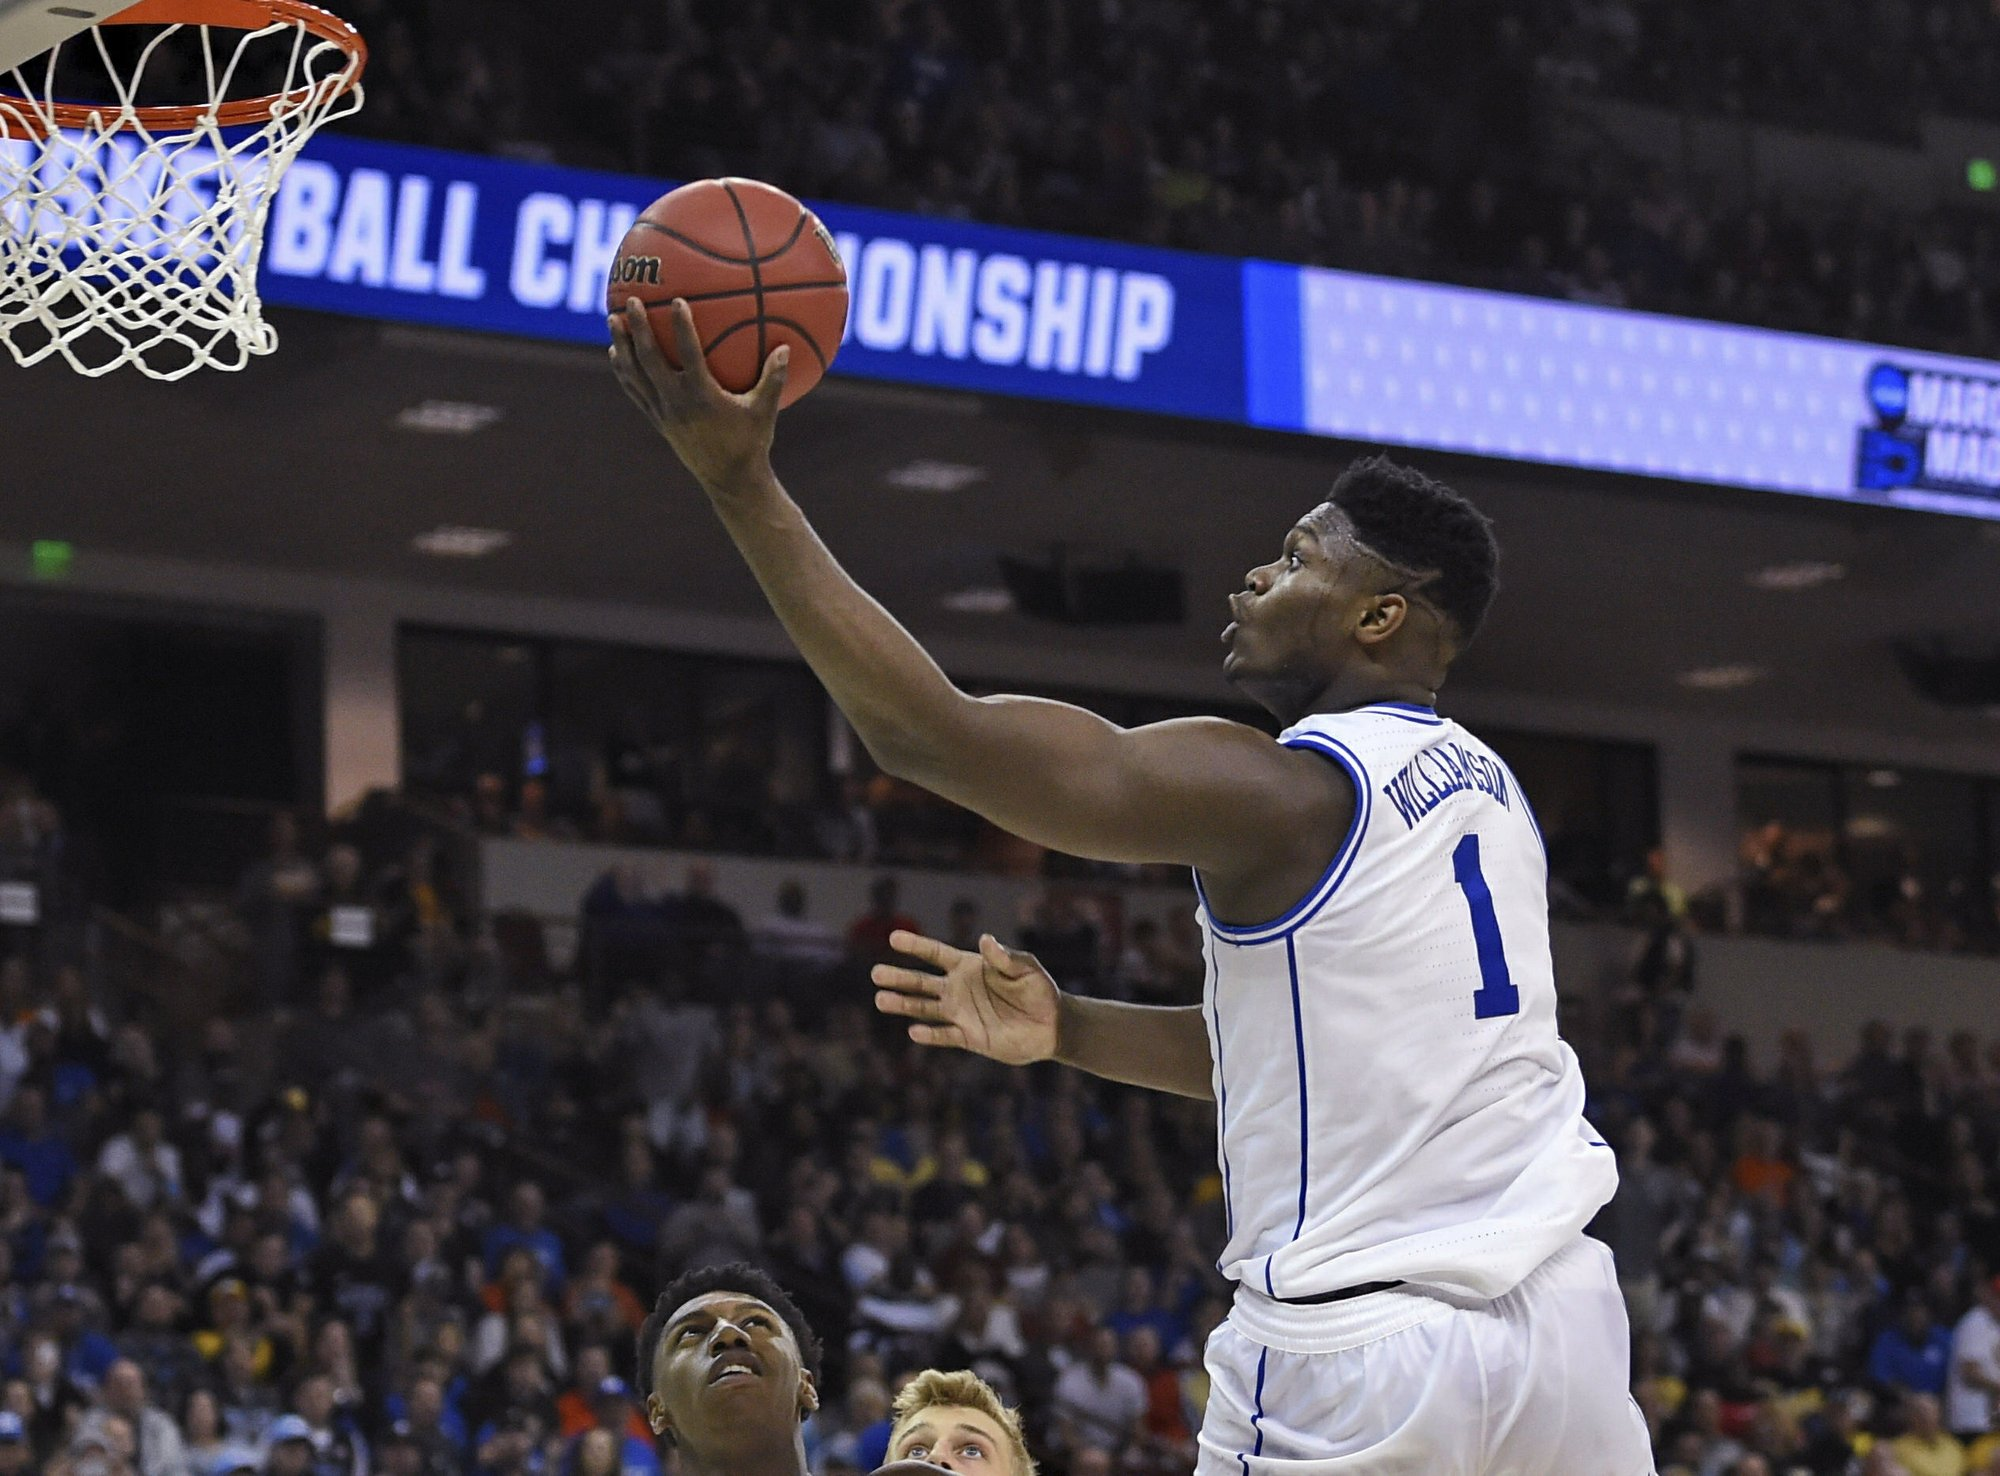 Duke's Zion Show has successful NCAA Tournament debut